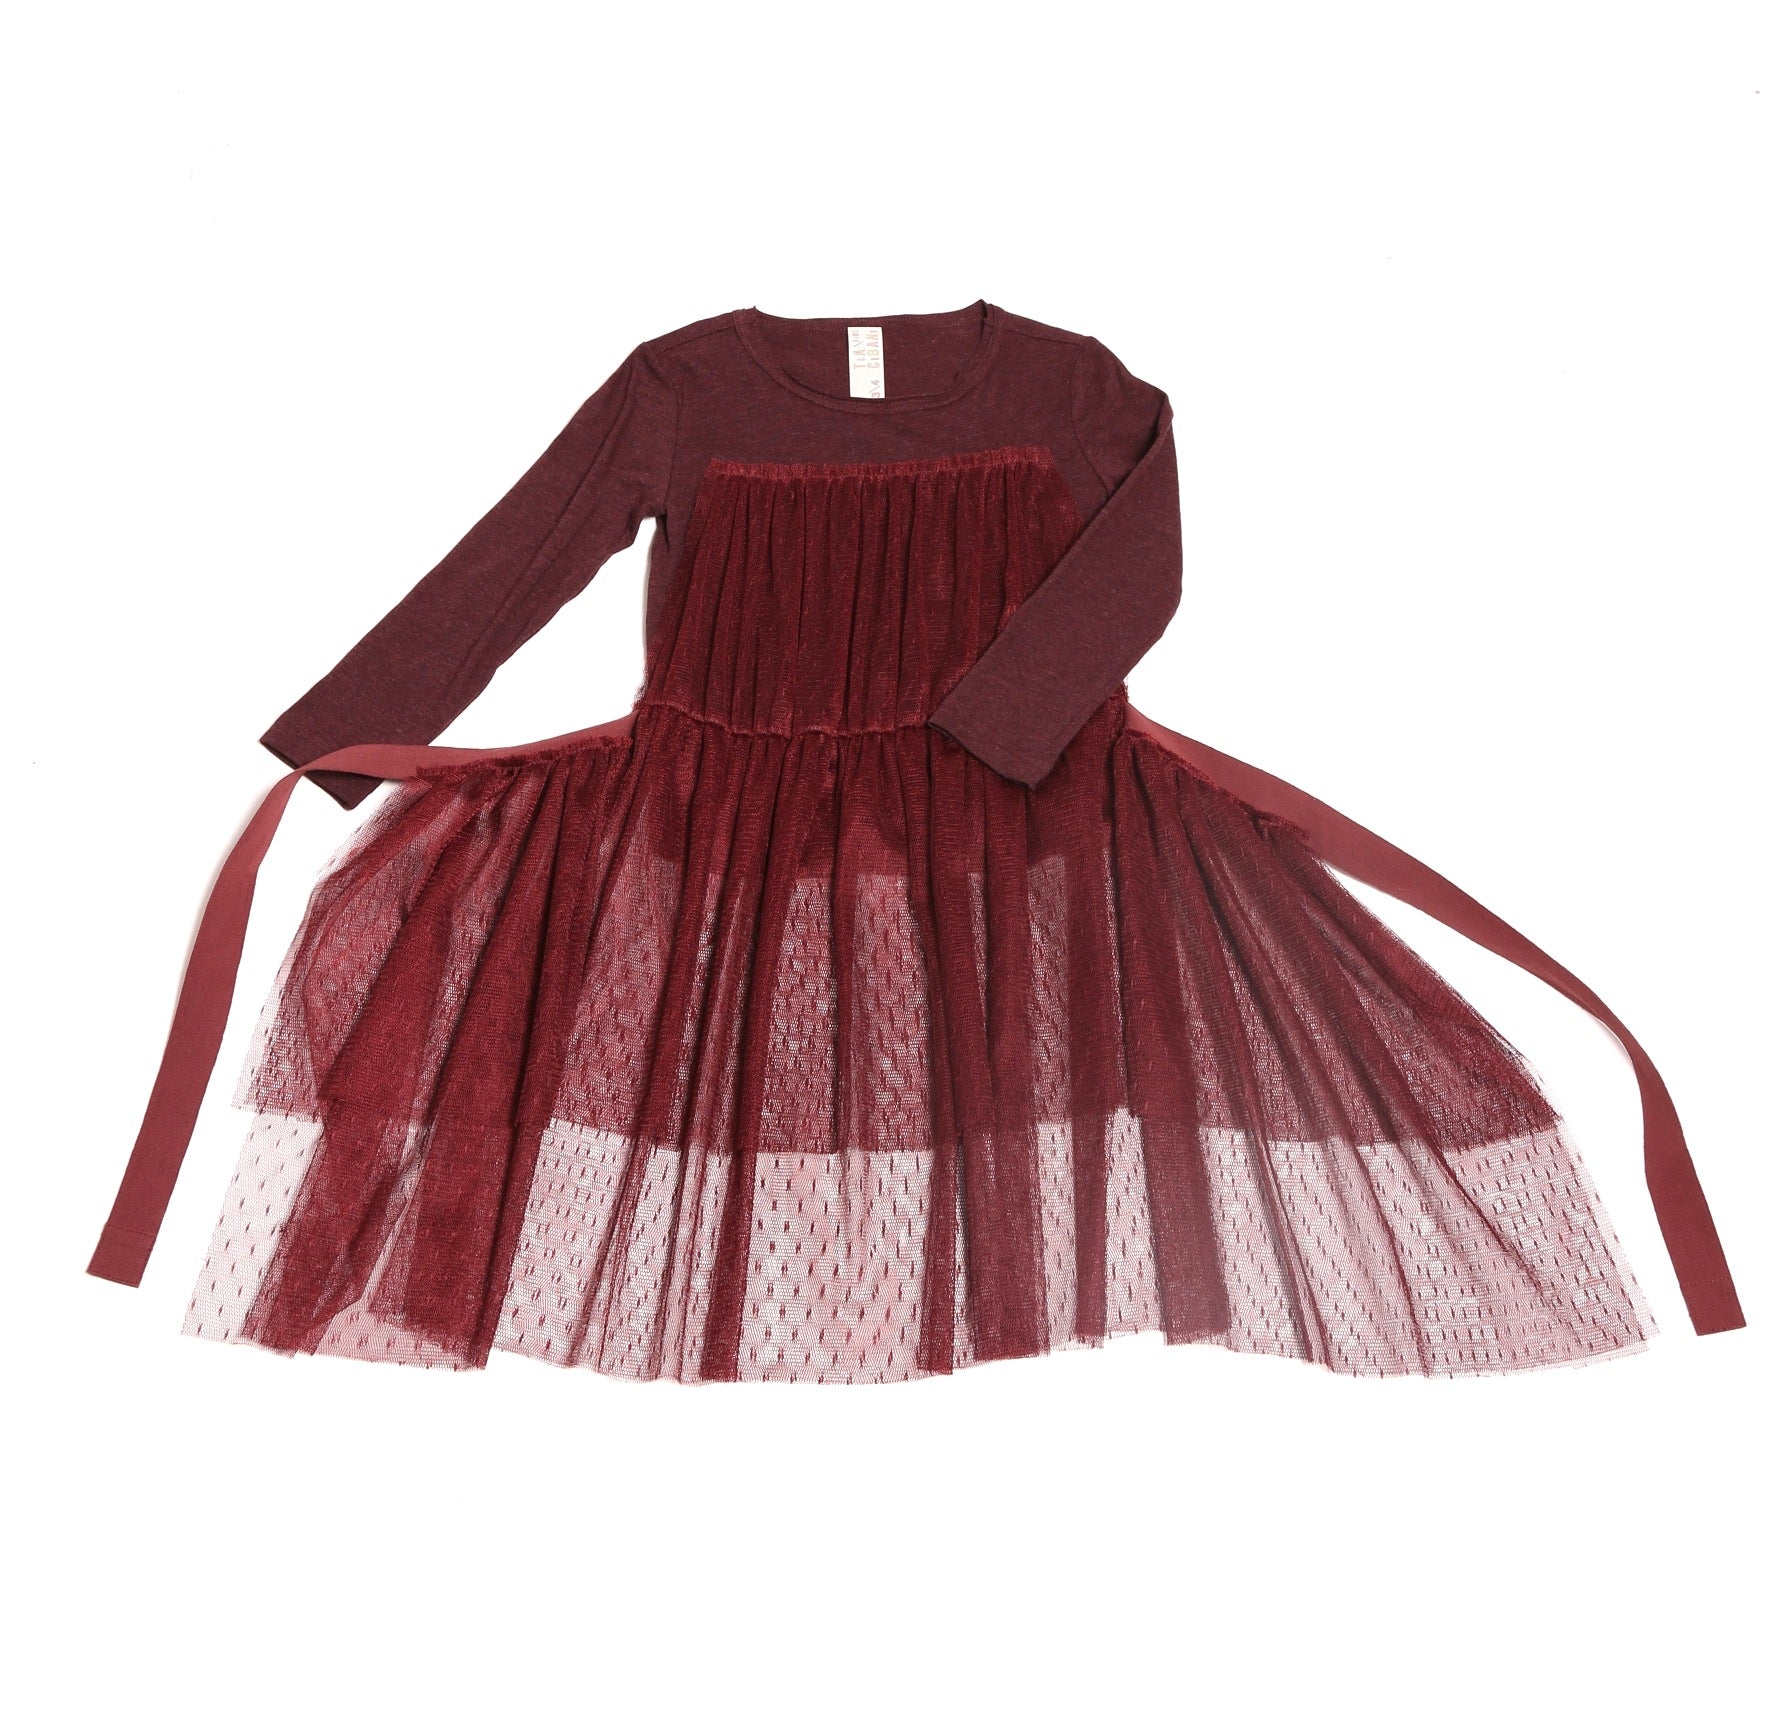 Classic Tulle Apron T-shirt